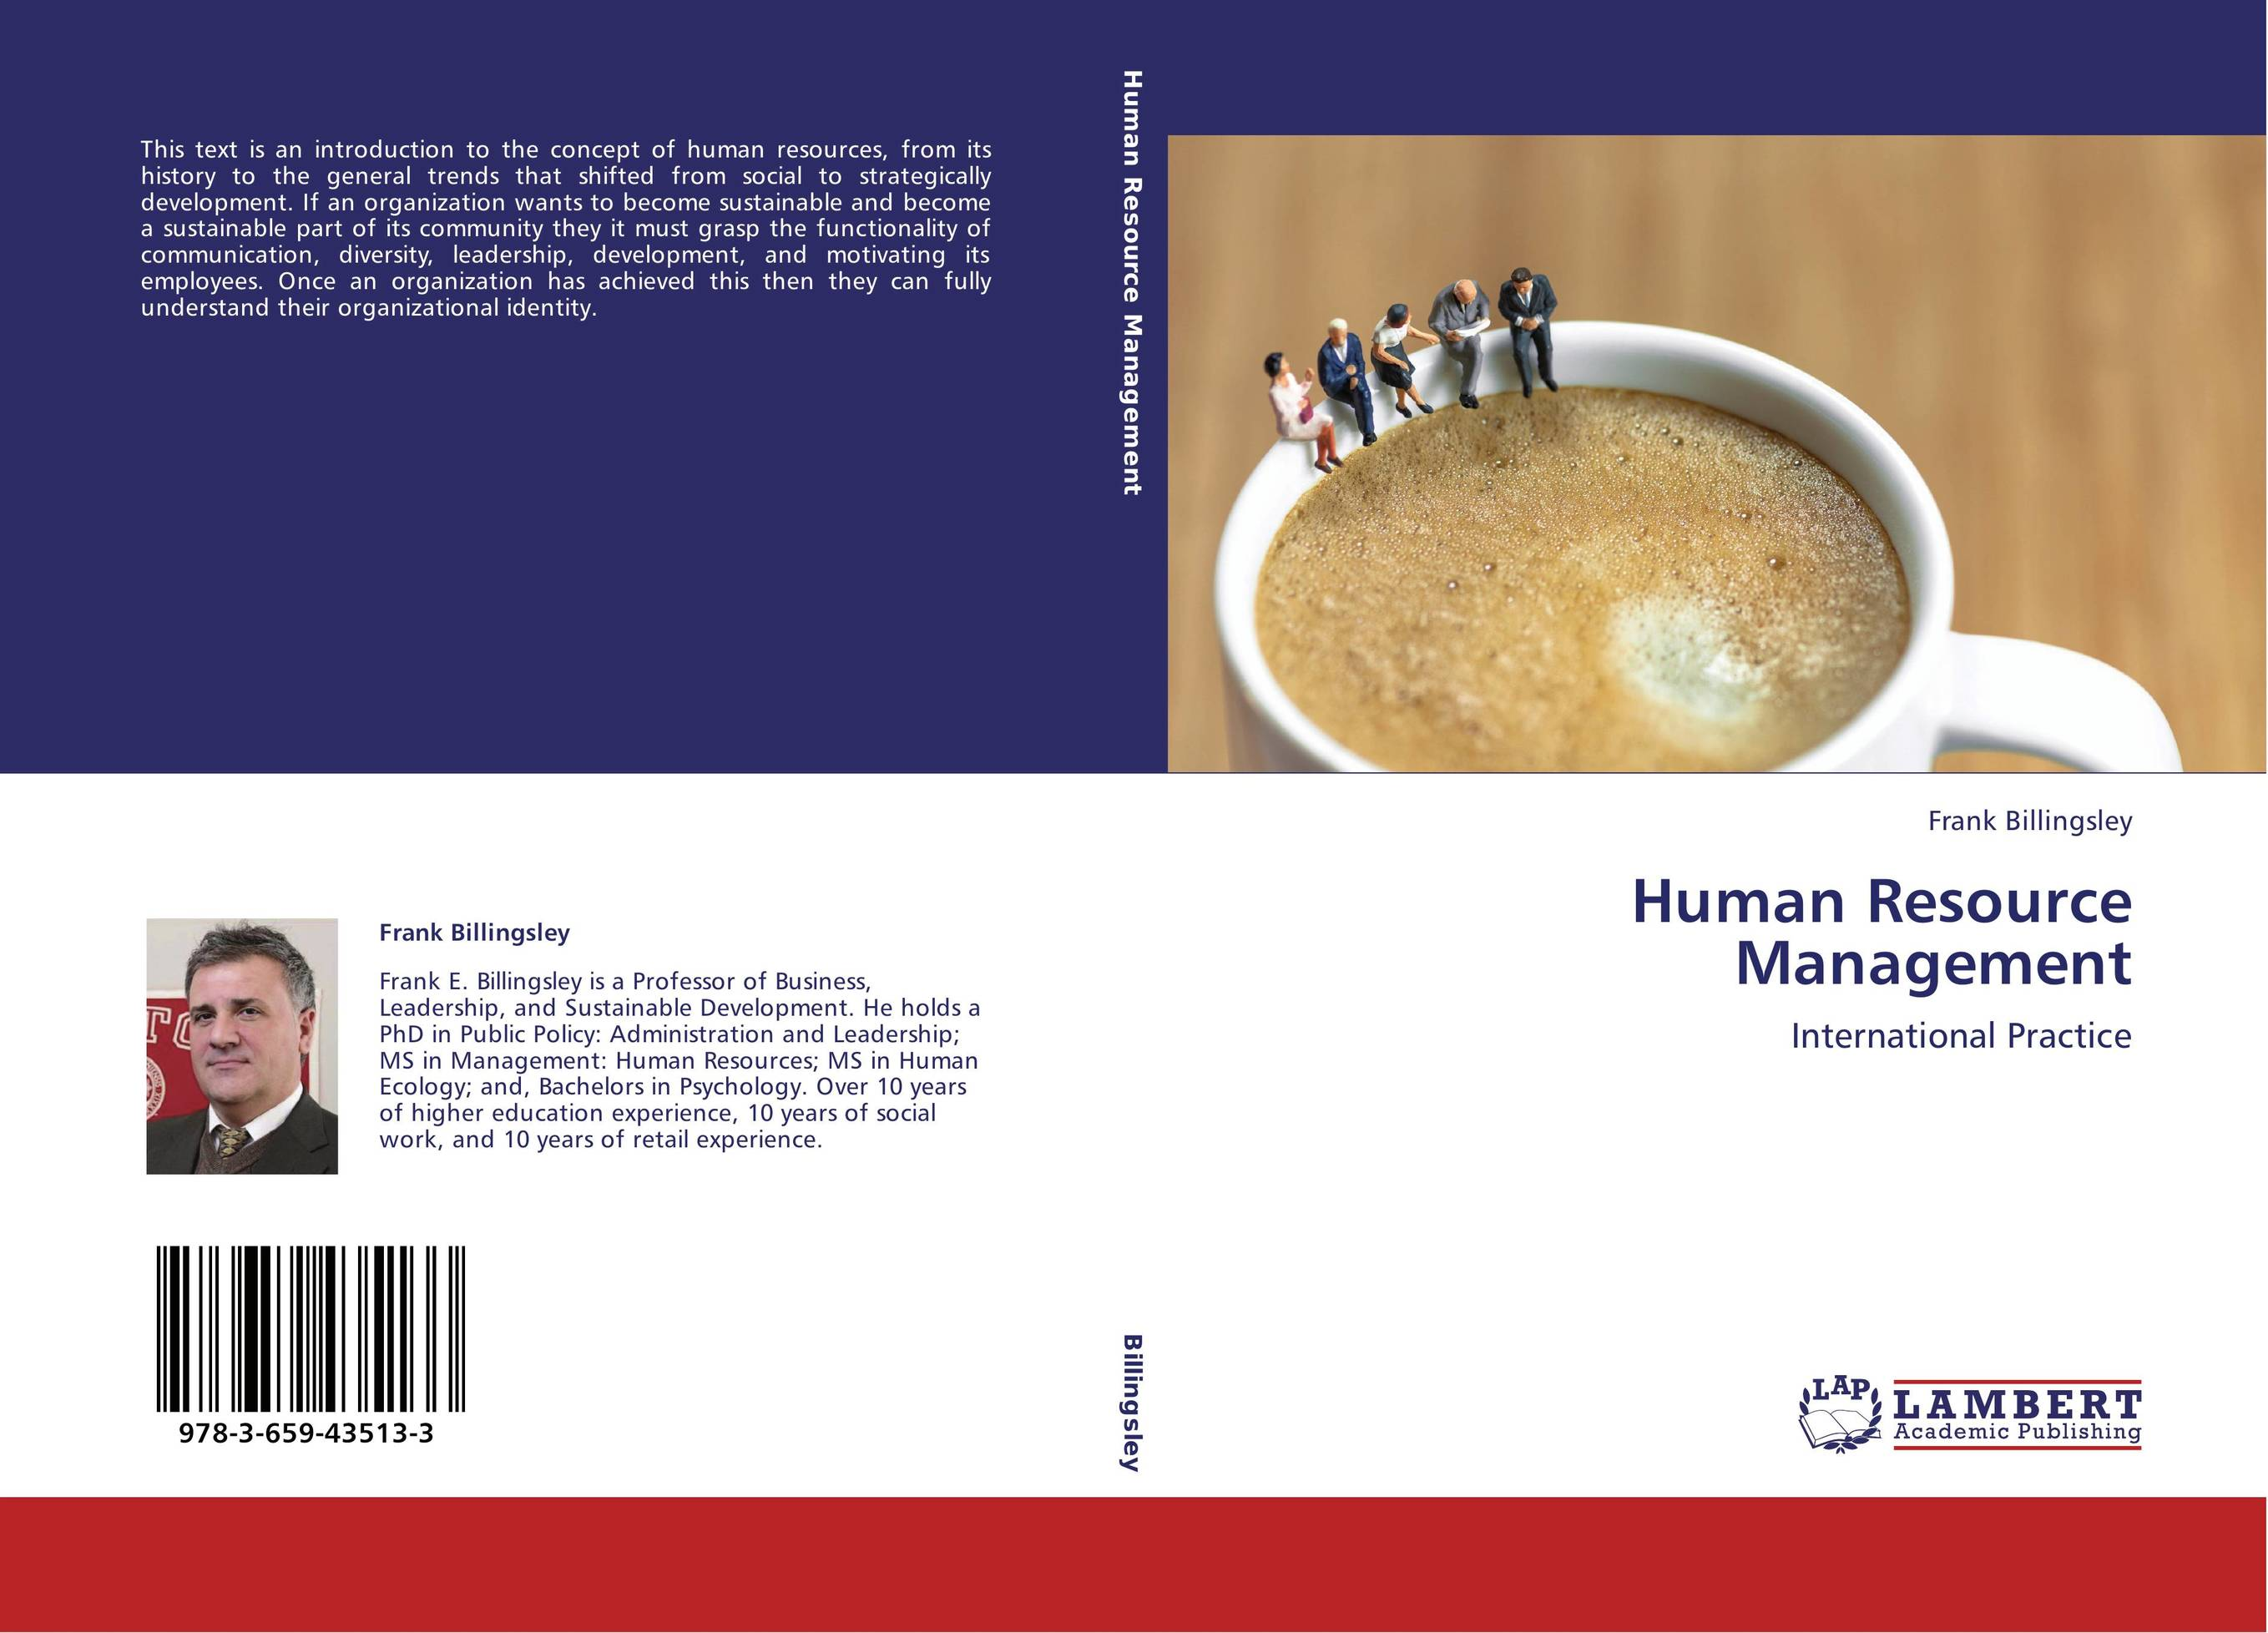 squares hrm practice Impact of human resource management practices on organizational performance has been a widely researched area for years but unfortunately, very insufficient number of studies have been conducted on this area in the context of bangladesh and other developing countries this study was undertaken to.